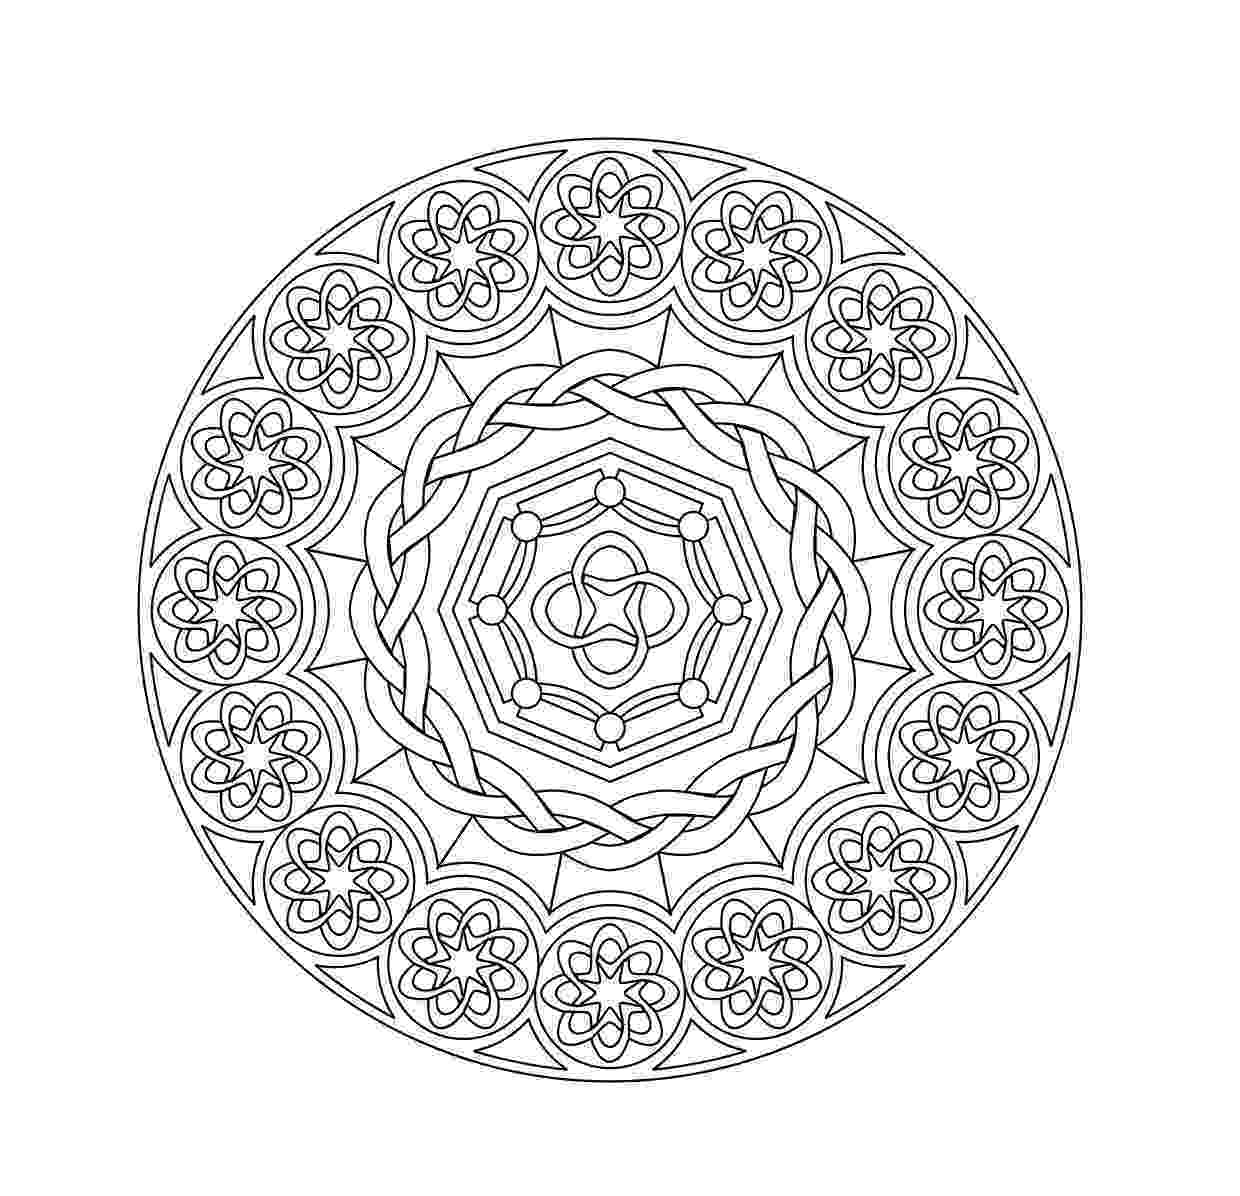 free printable mandalas for adults free printable mandala coloring pages for adults for mandalas adults free printable